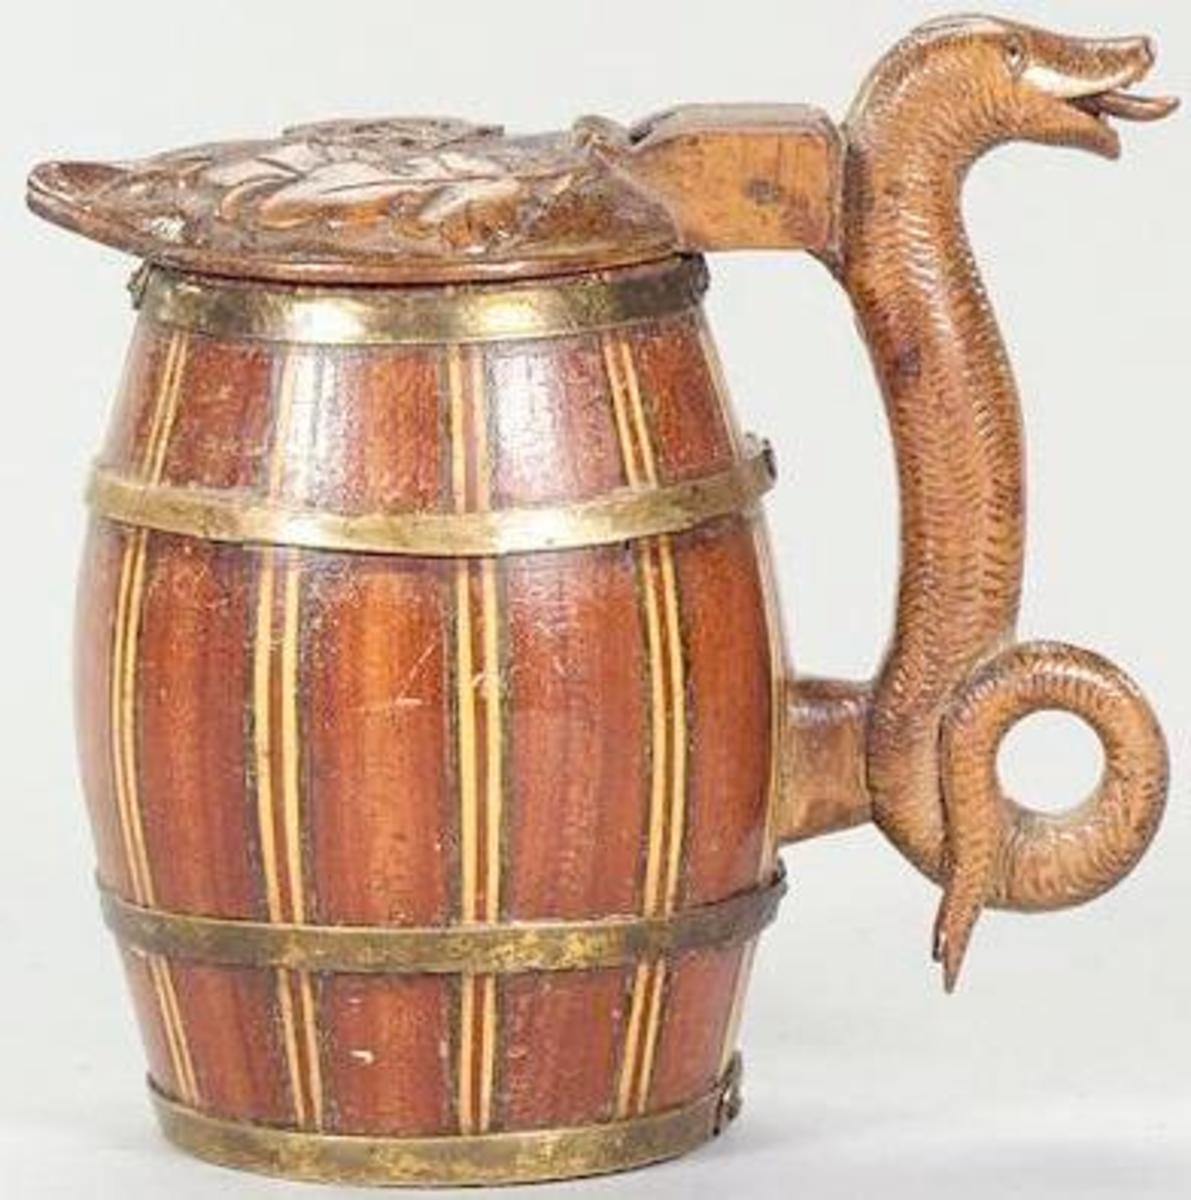 A Slovakian wooden staved stein. Circa 1850-80, source steve on steins - history of coffee mugs